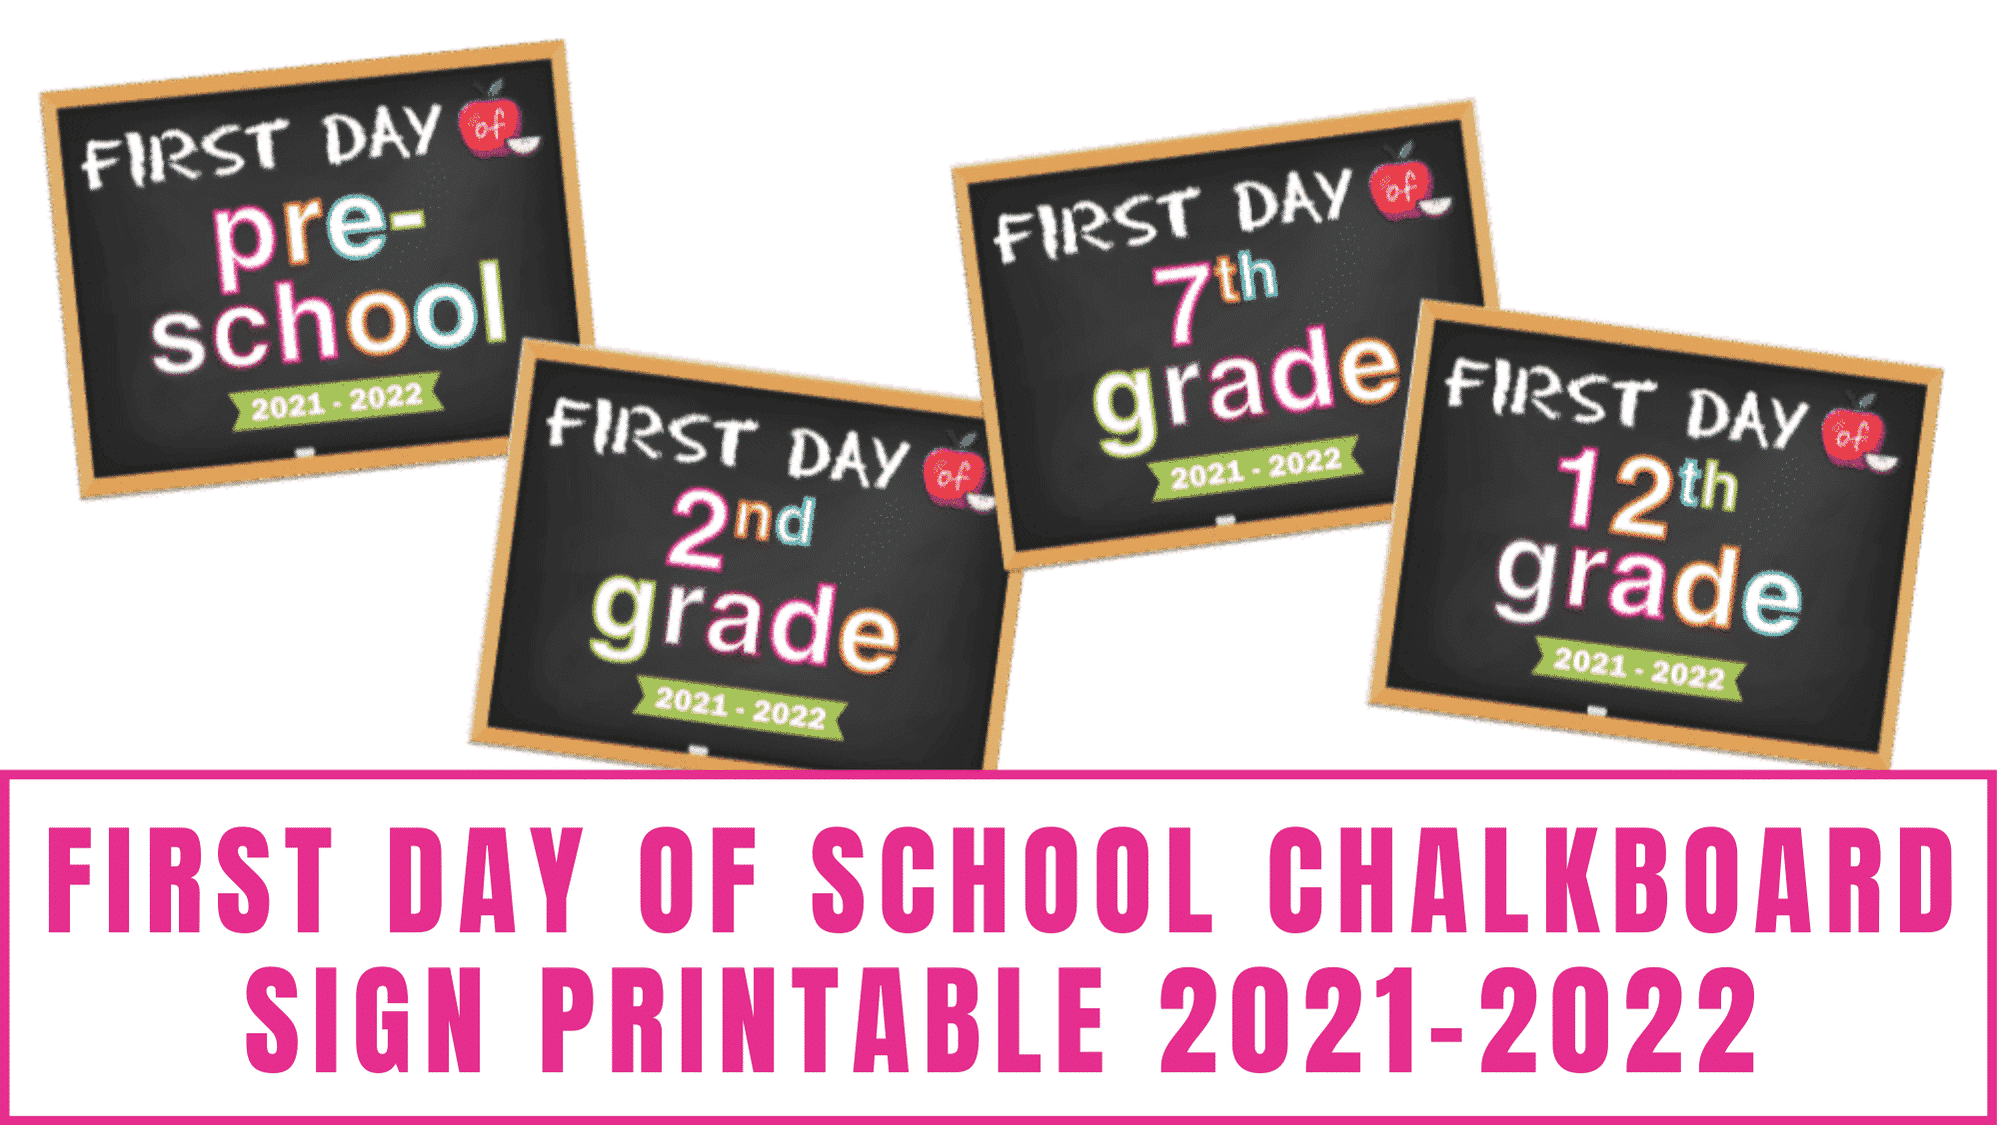 Remember your child's special day by having them hold a first day of school chalkboard sign printable 2021-2022 as you take their picture. It's fun to see how much they have changed through the years.